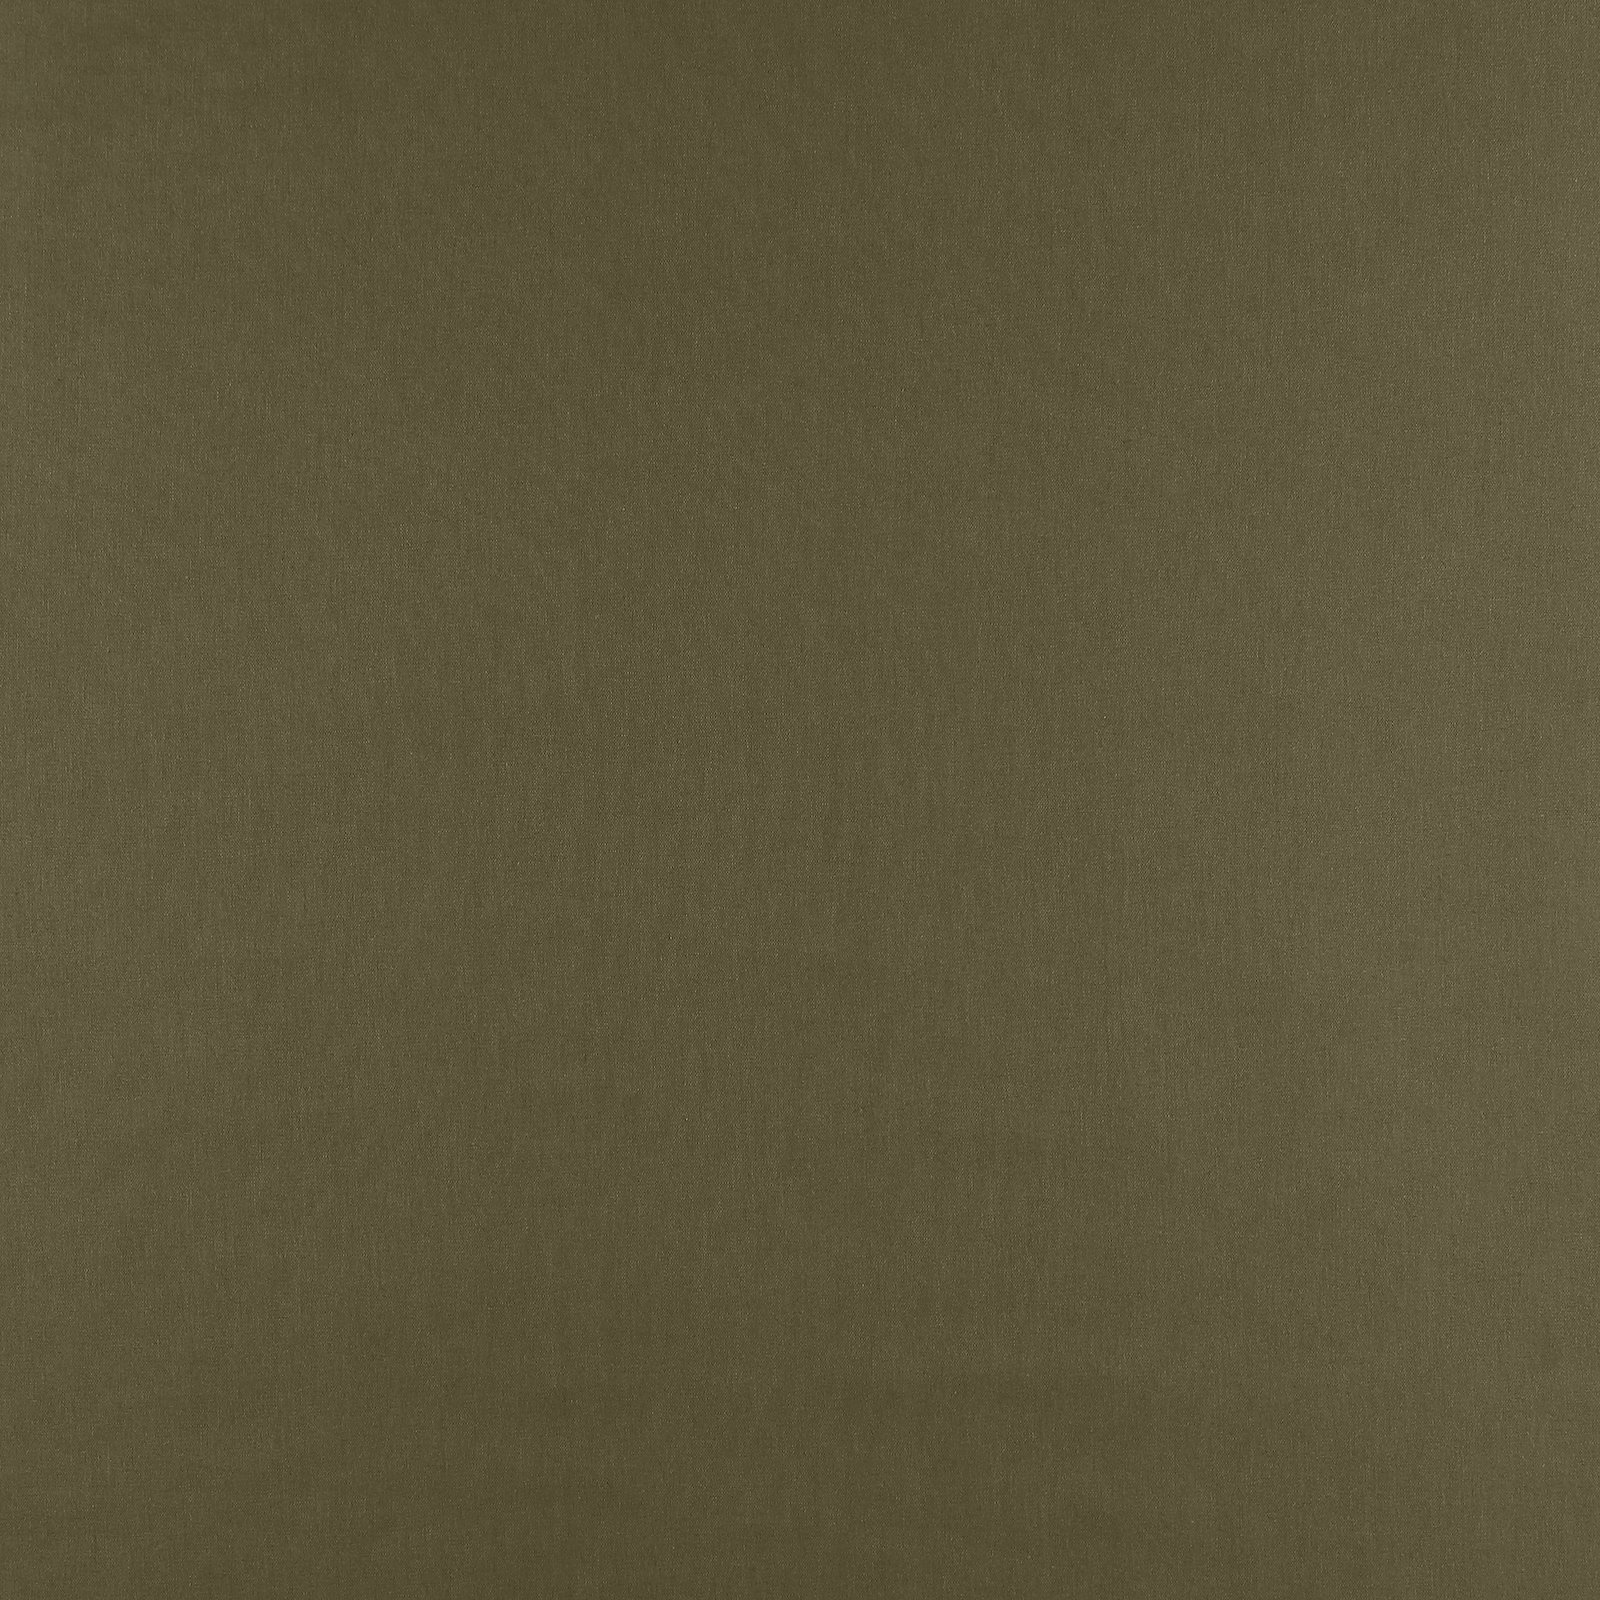 Linen/cotton army green 410145_pack_solid